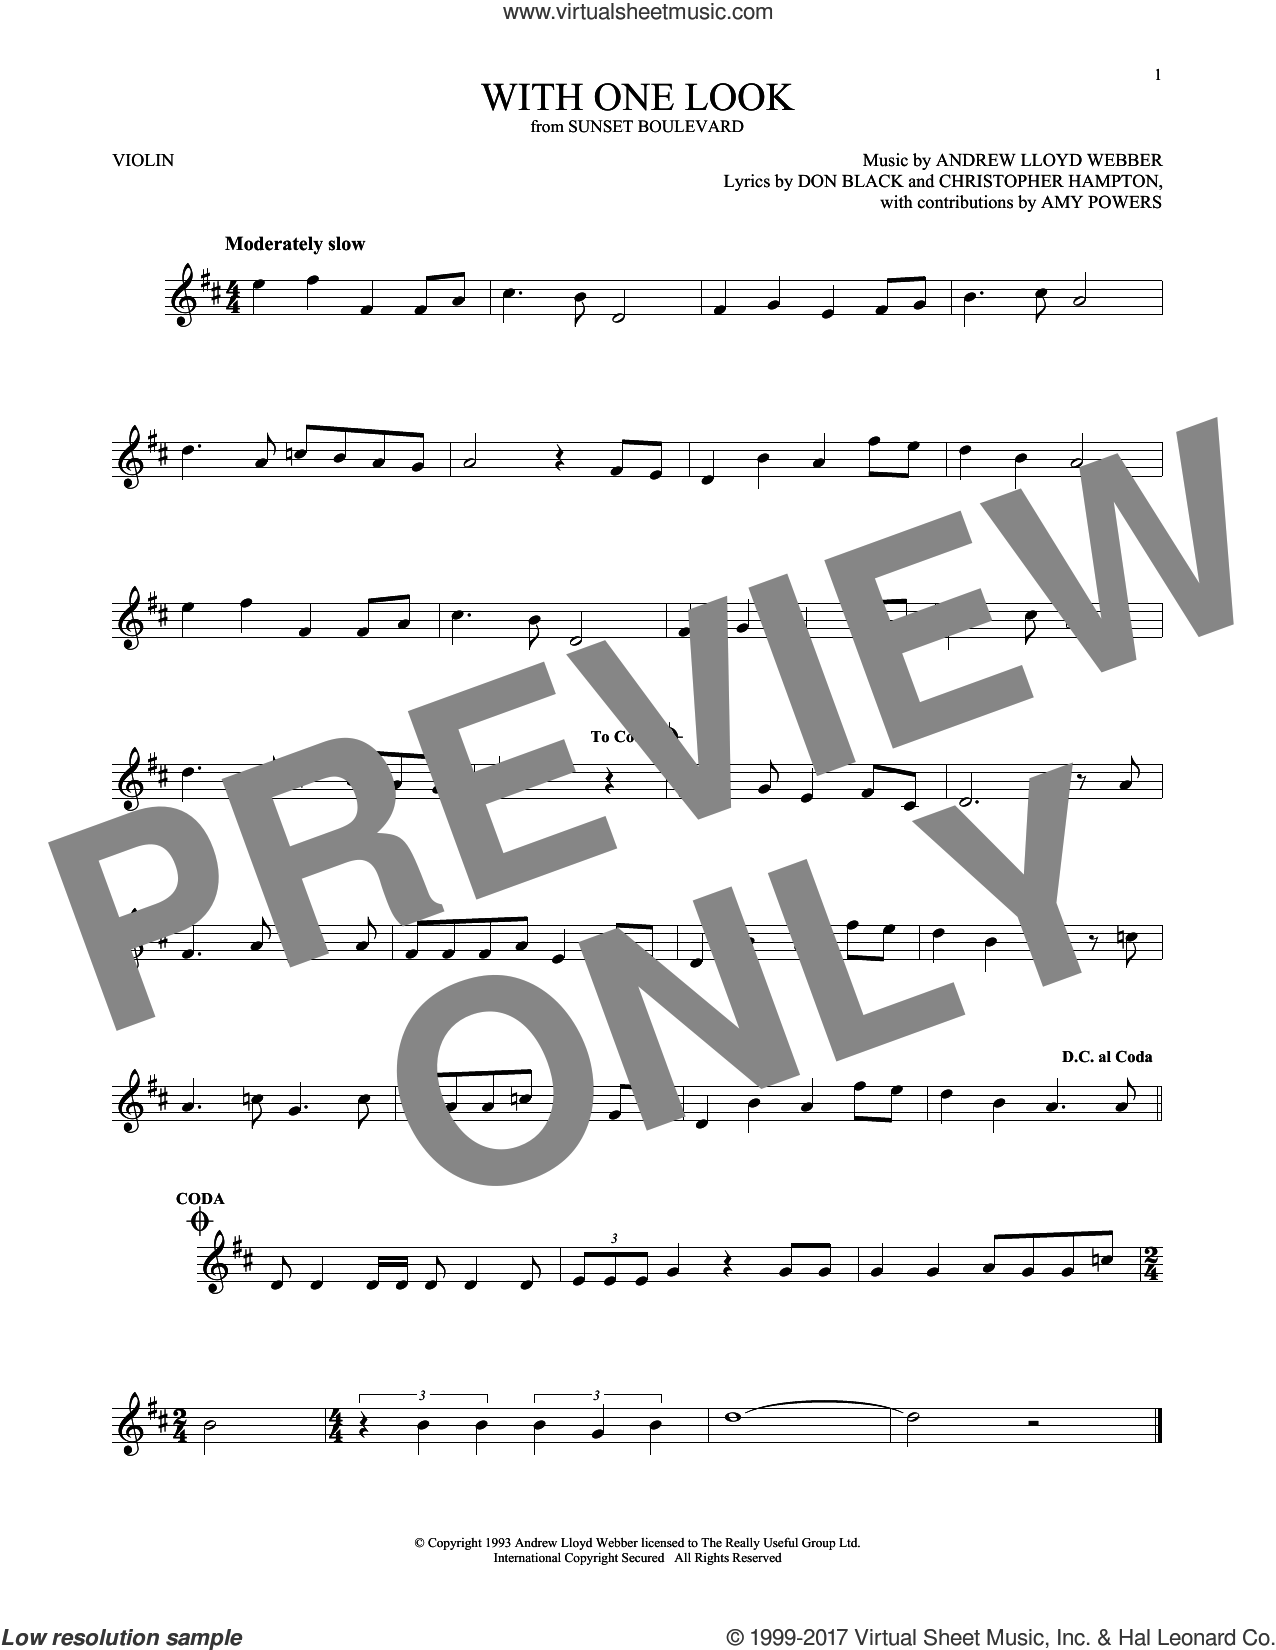 With One Look sheet music for violin solo by Andrew Lloyd Webber, Christopher Hampton and Don Black, intermediate skill level